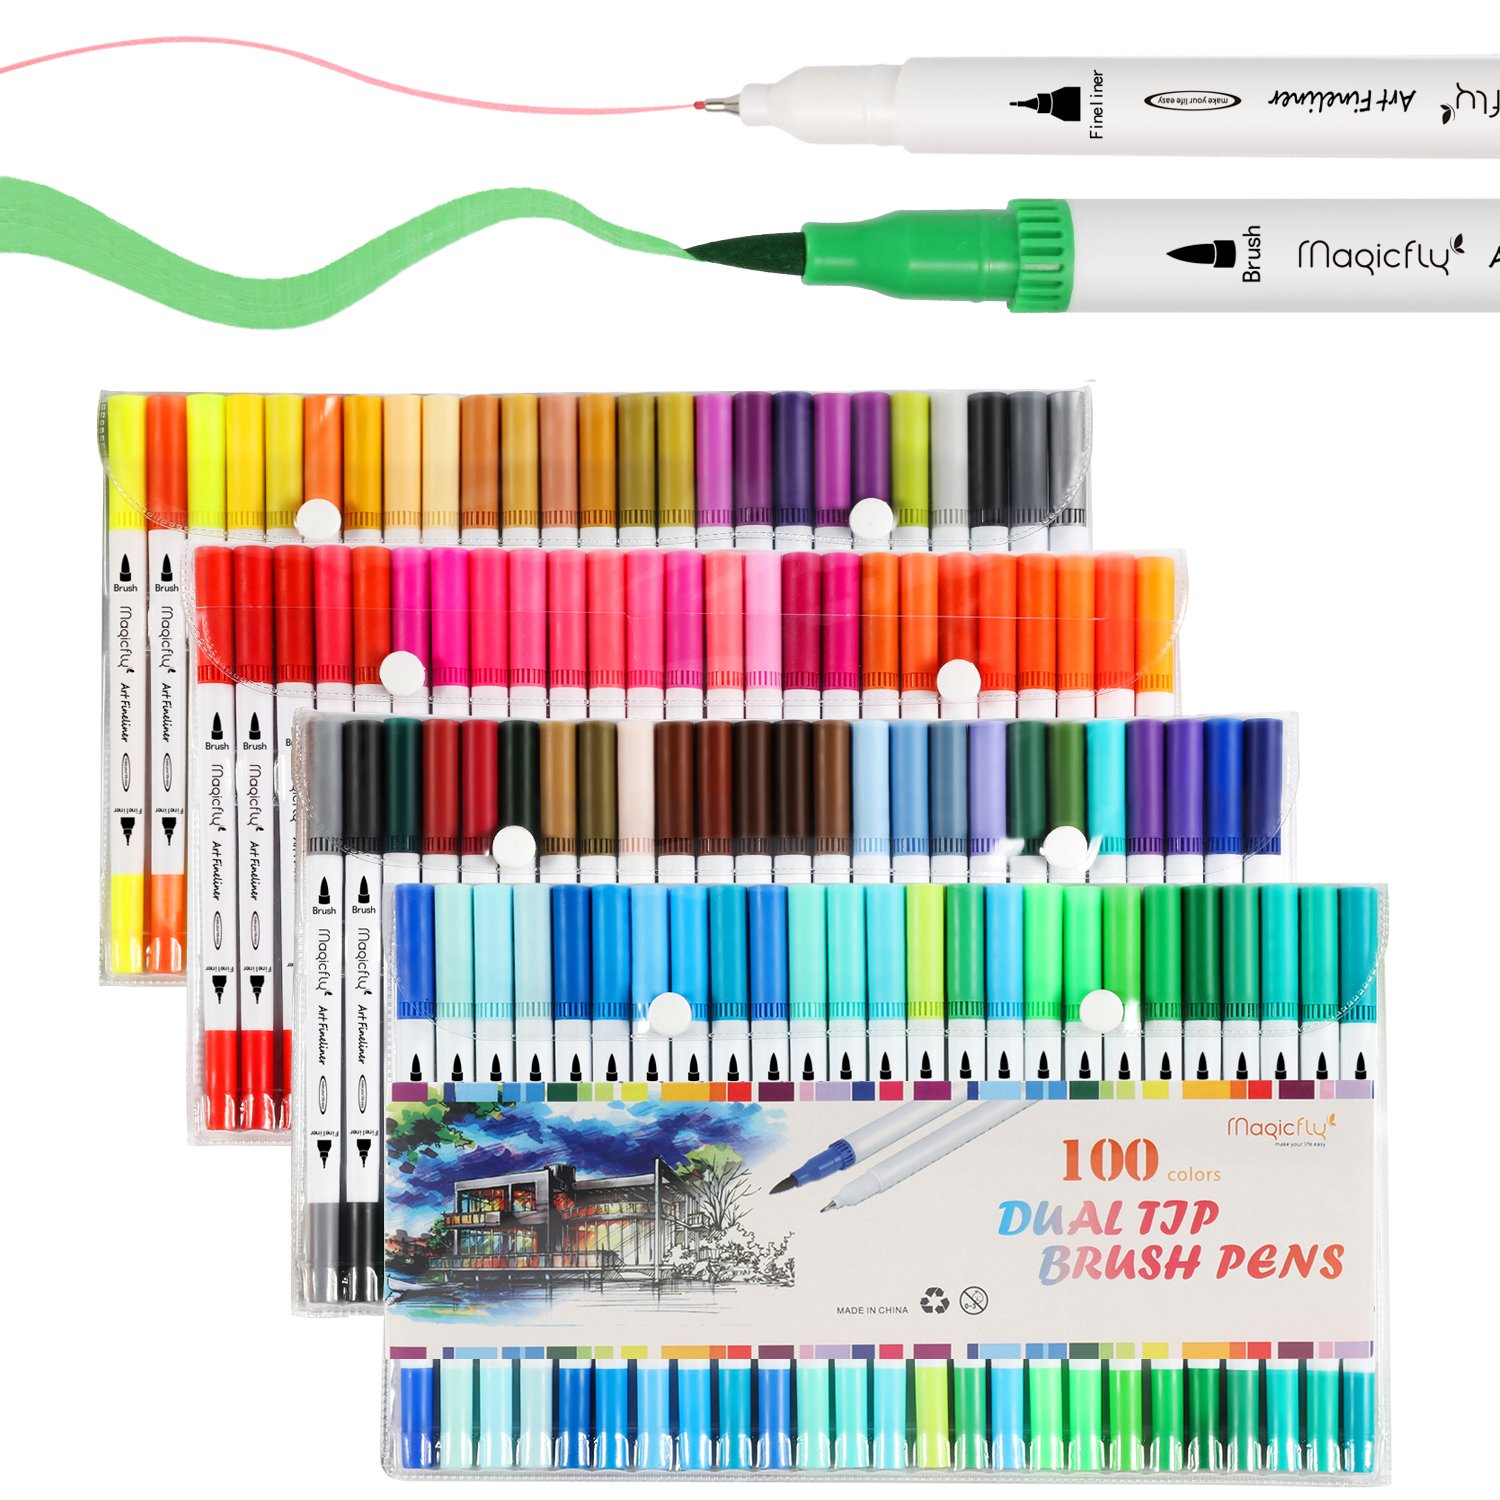 100 Dual Tip Brush Pens, Magicfly Water Coloring Markers with Fineliner Tip 0.4 and Highlighters Brush Tip(1mm-2mm) for Art Marker Brush Tips, Calligraphy, Manga, Bullet Journal by Magicfly